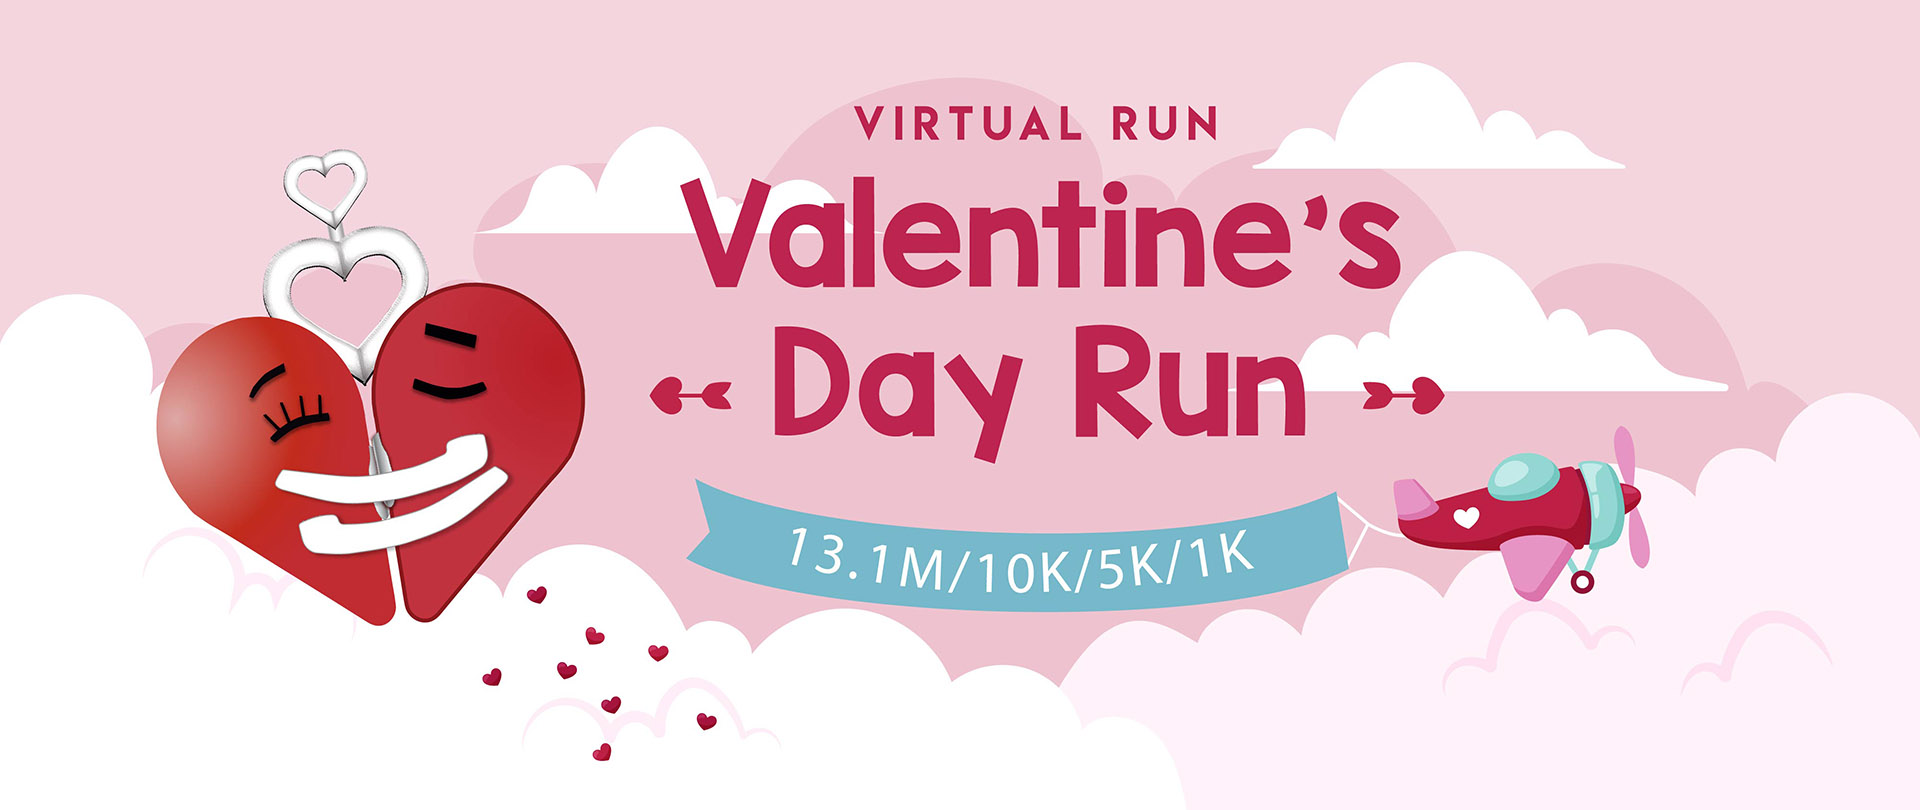 Valentine's Day Run